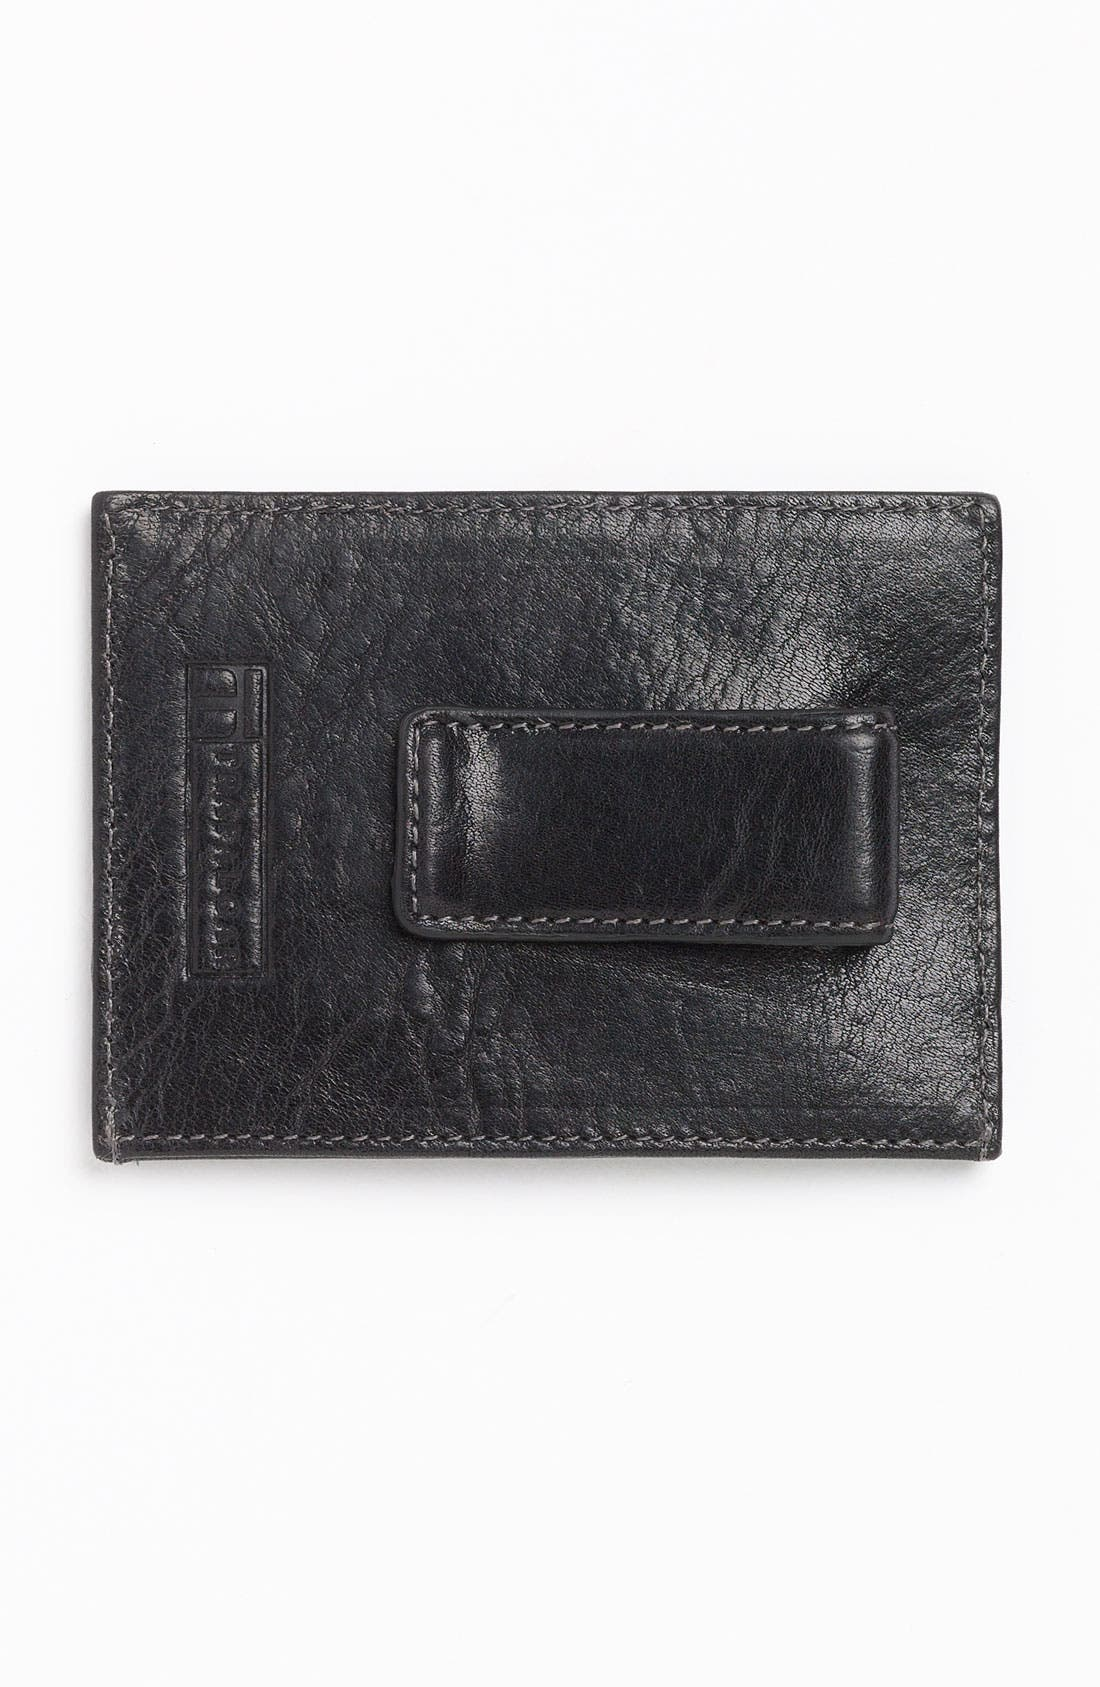 Alternate Image 1 Selected - Trafalgar 'Chesapeake' Money Clip Wallet